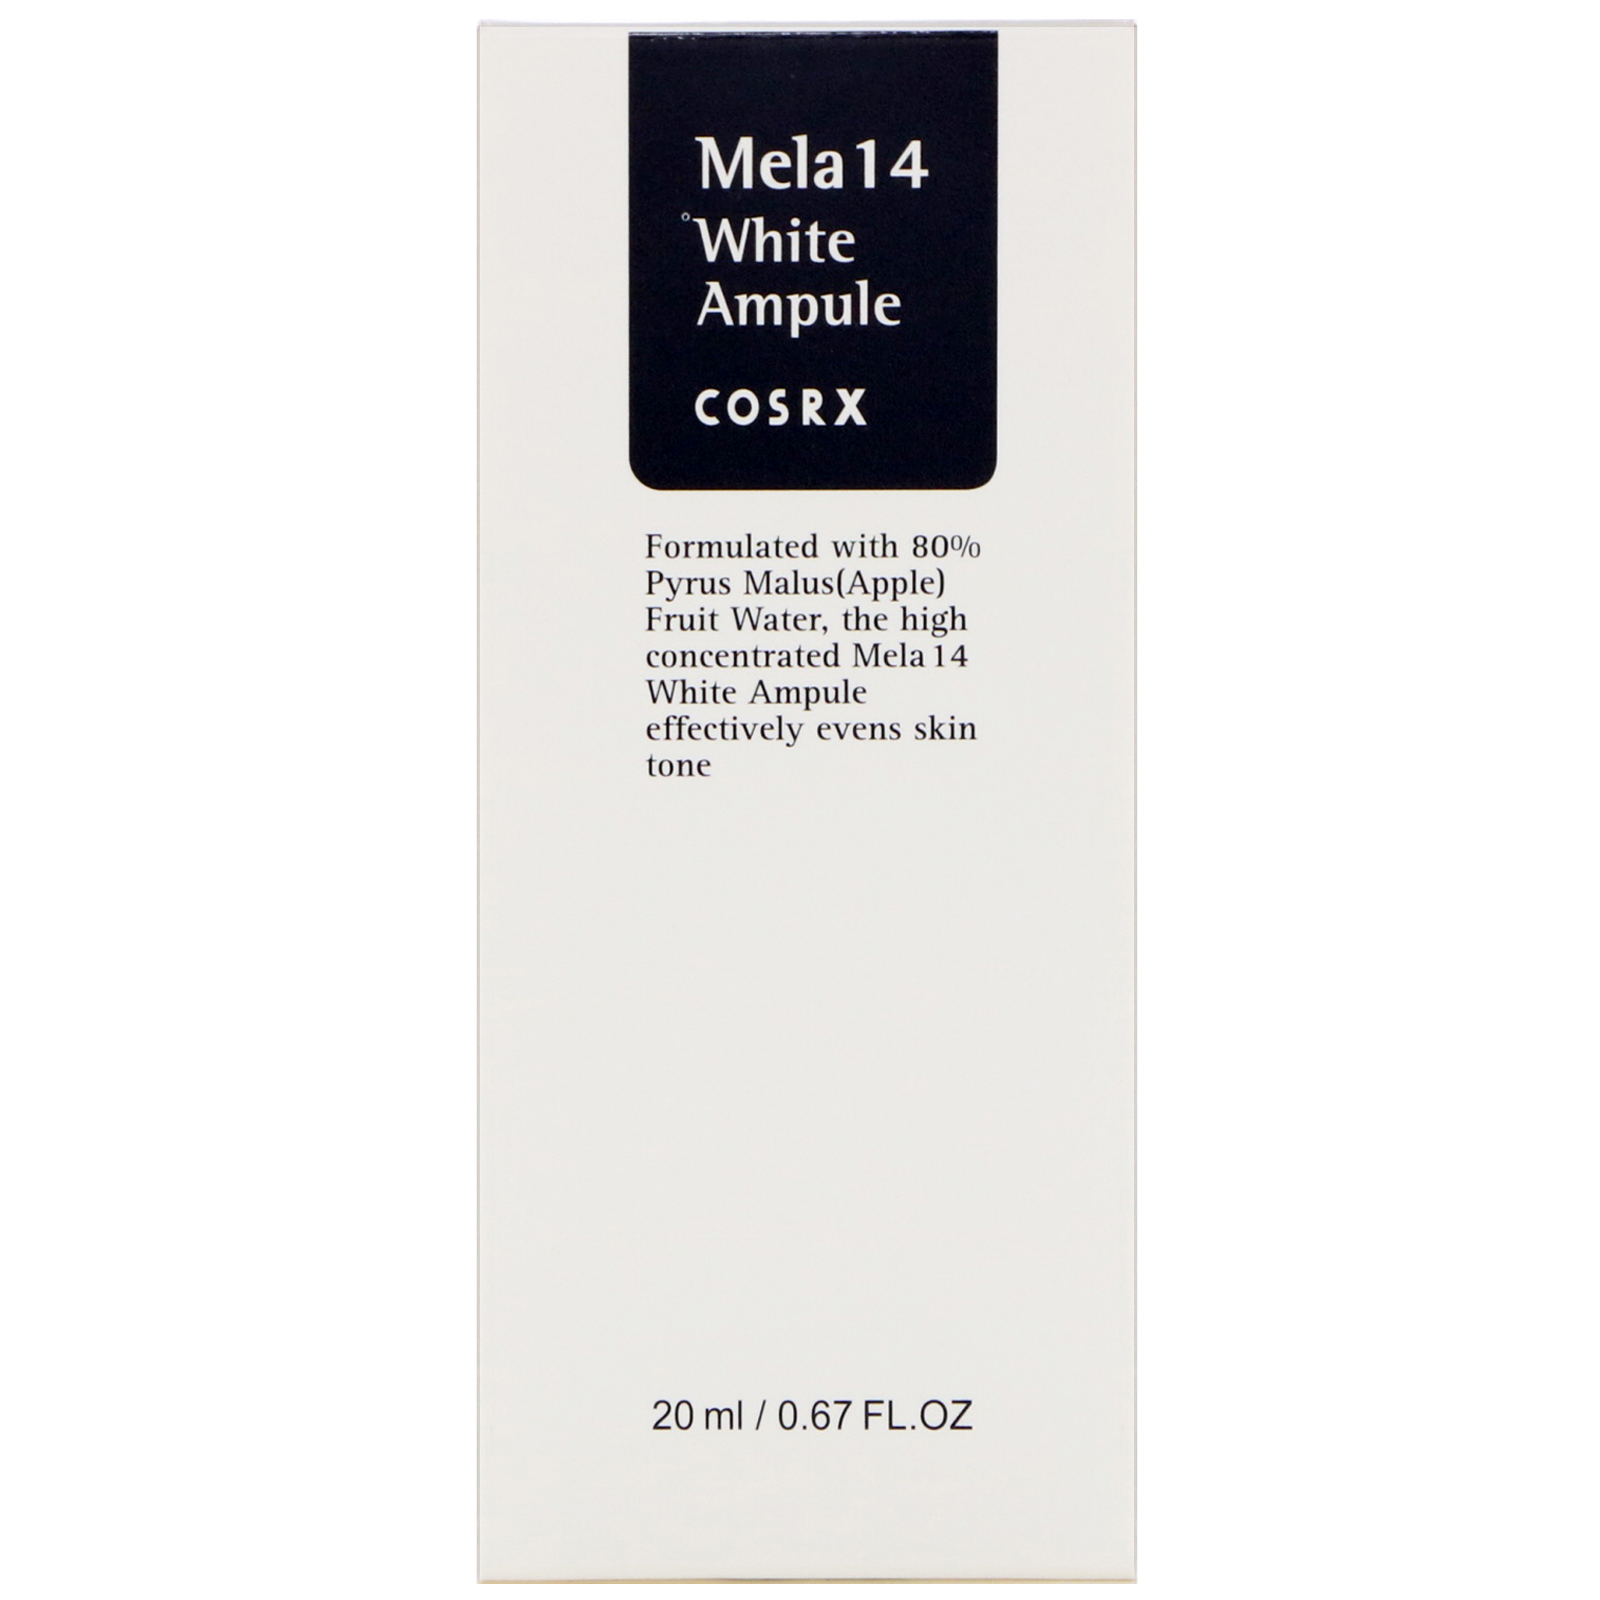 Cosrx, Mela 14 White Ampule, 0.67 fl oz (20 ml). By Cosrx